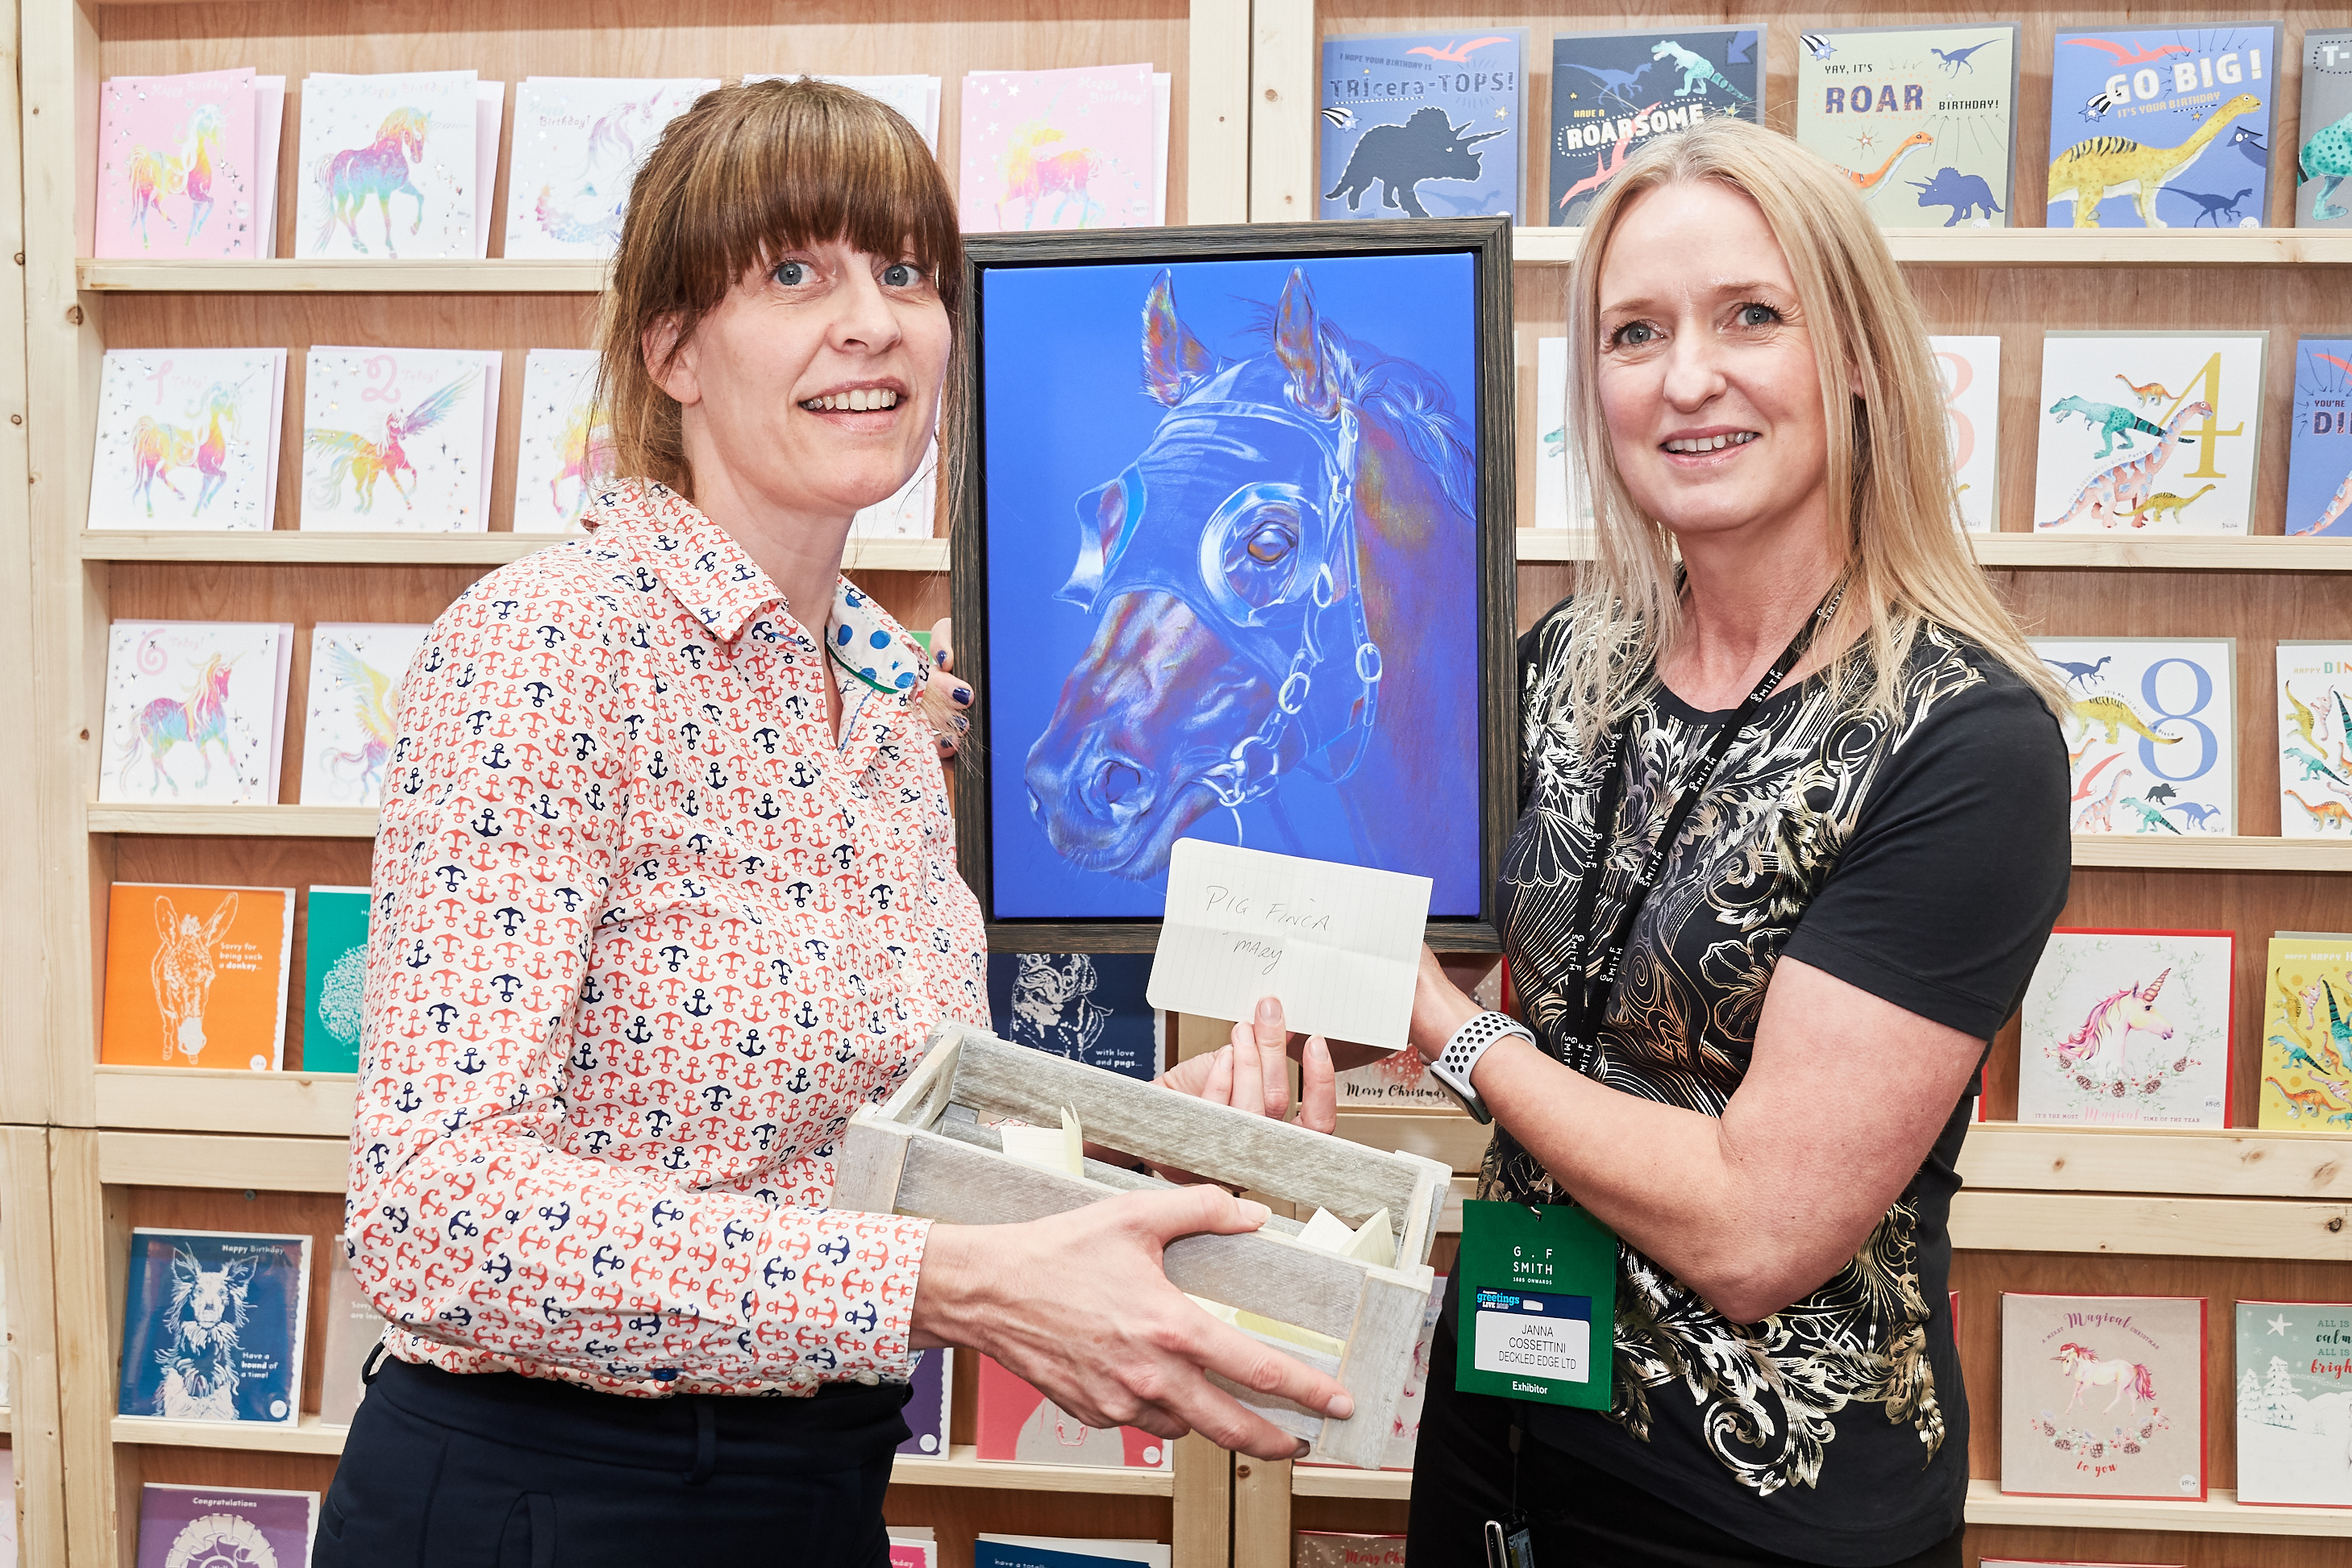 Above: The framed canvas of a beautiful racehorse, created by artist Janna Cossetini, founder of Deckled Edge (right), was won by Pig Finca in Kingsbridge, Devon. PG's Gale Astley (left) made the prize draw.